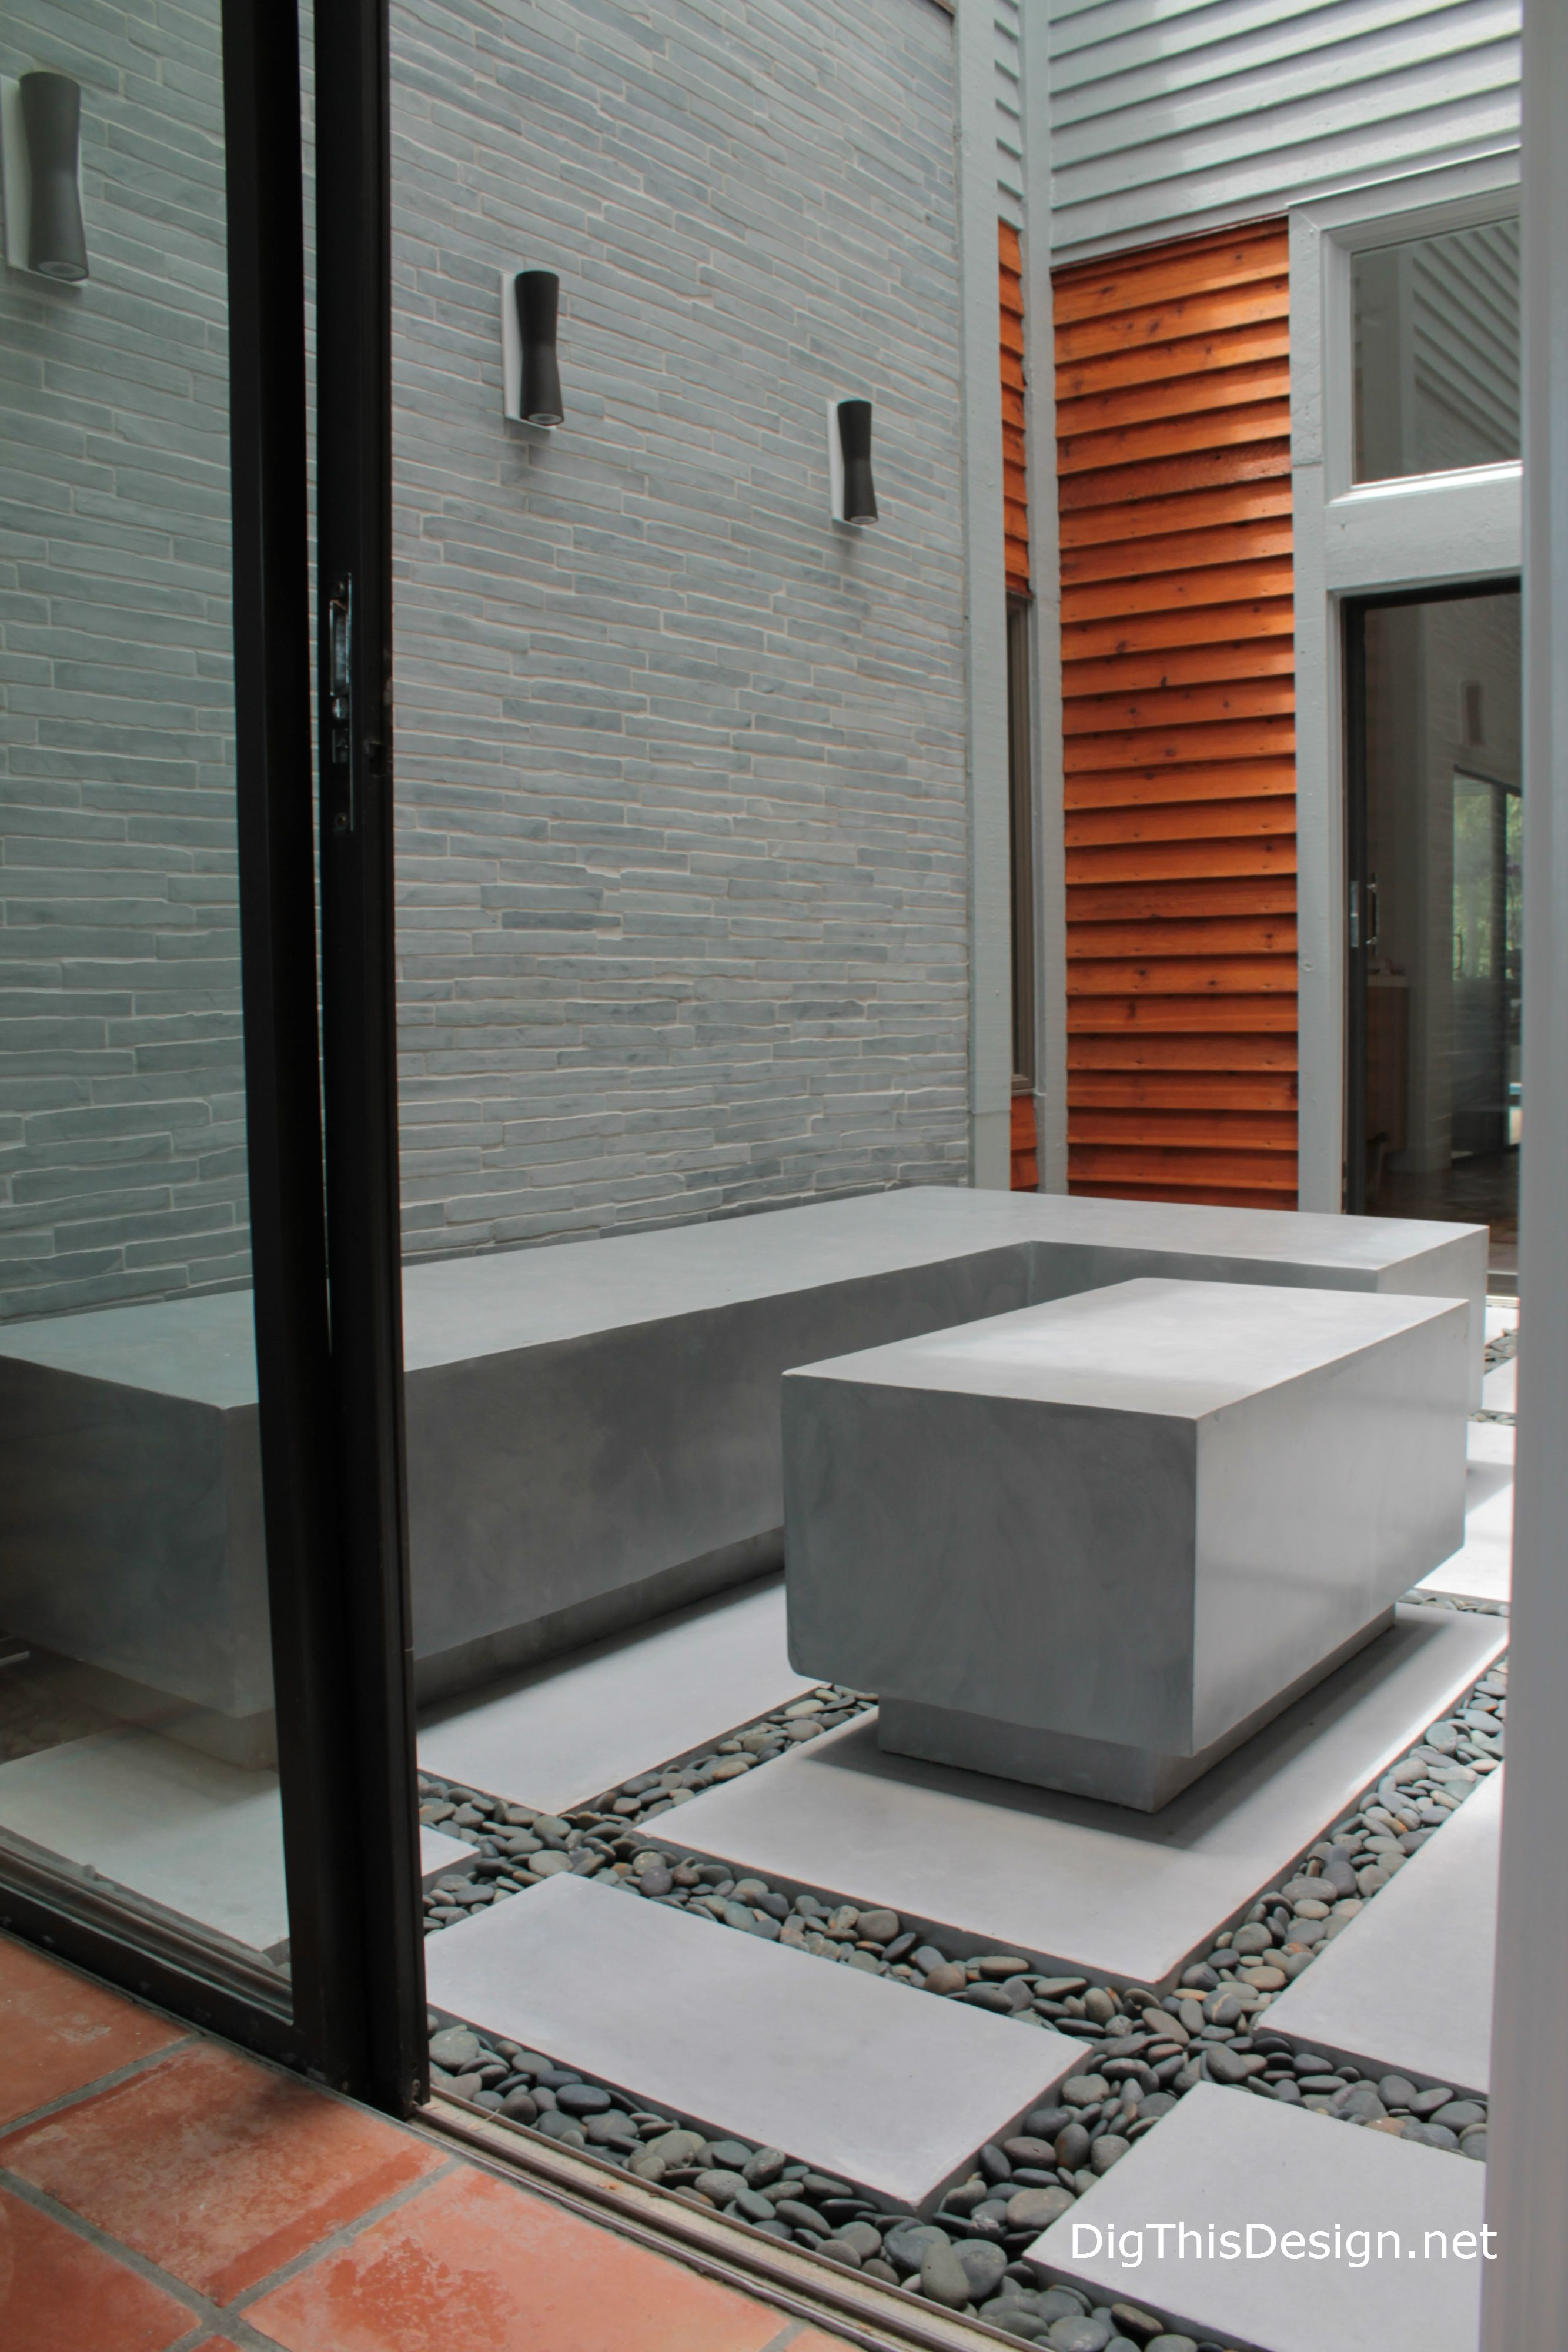 Enter Loveitmoment For 1 000 00 Shopping Spree On Build Com Tips For Outdoor Spaces Dig This Design Design Stone Cladding Outdoor Design